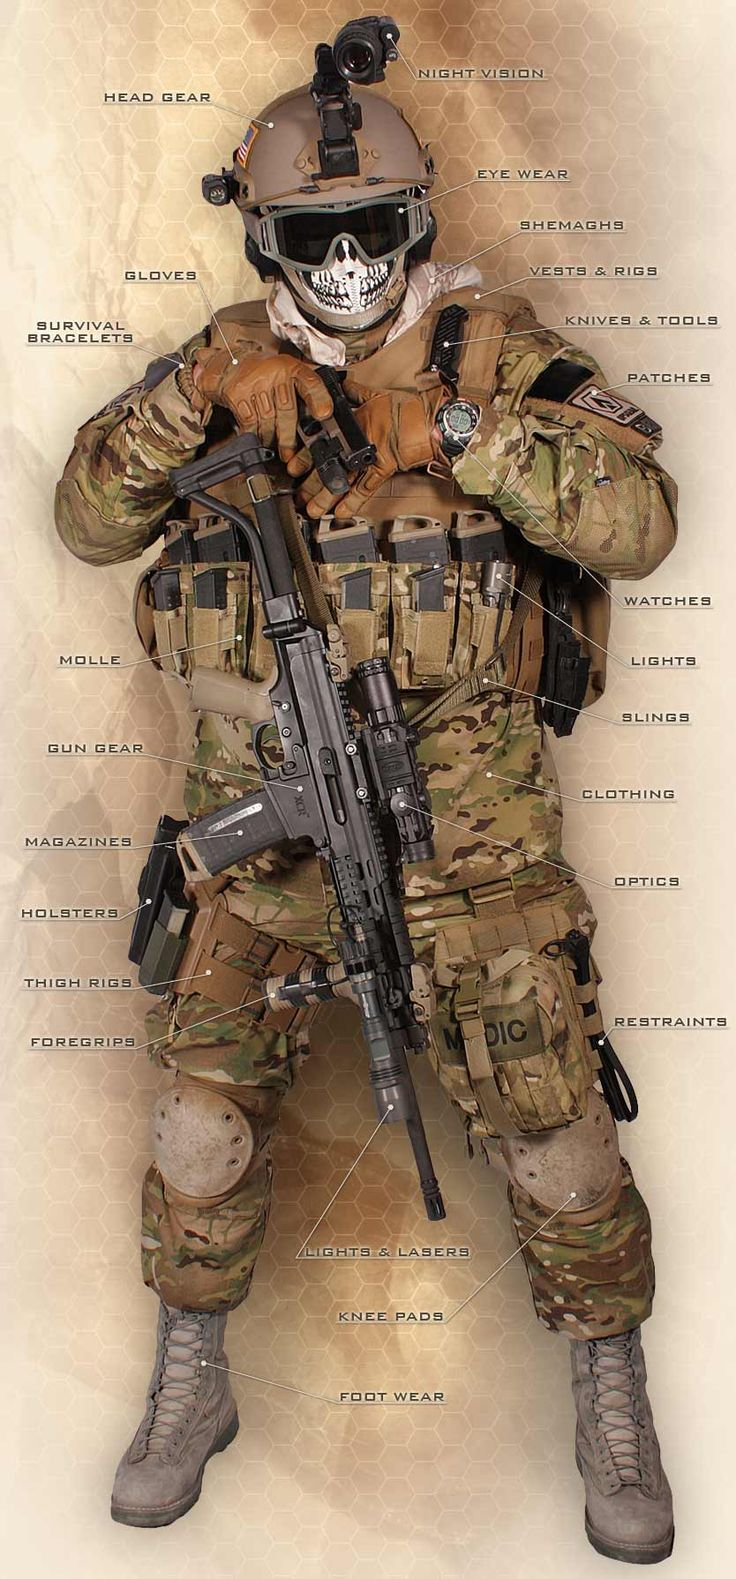 Looks cool, sure, but can't run for shit though. Only effective if you have motorized ground or air support. Too much gear.  (:Tap The LINK NOW:) We provide the best essential unique equipment and gear for active duty American patriotic military branches, well strategic selected.We love tactical American gear